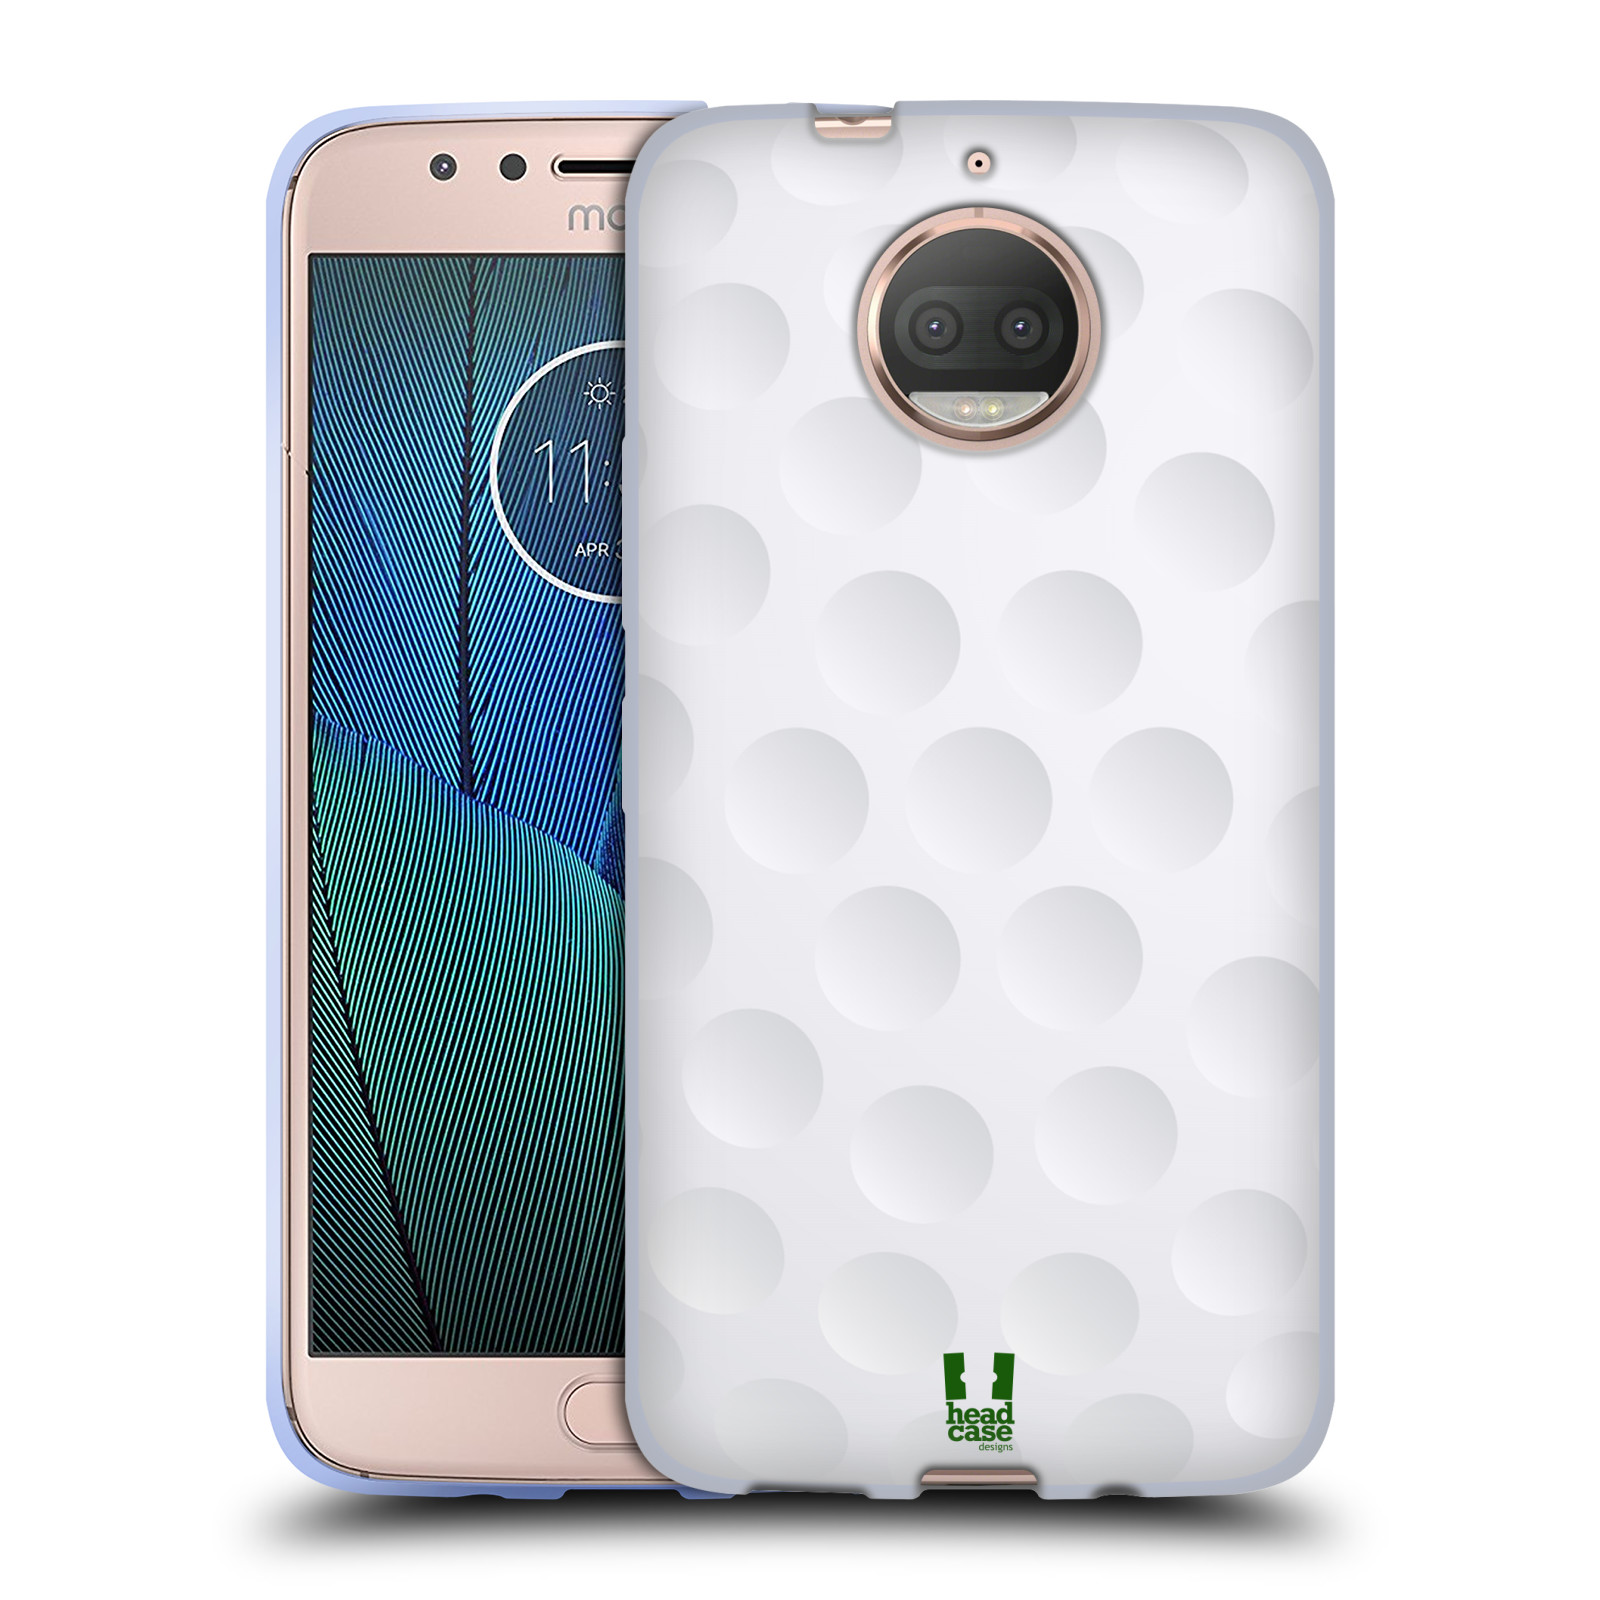 HEAD-CASE-DESIGNS-BALL-COLLECTION-SOFT-GEL-CASE-FOR-MOTOROLA-MOTO-G5S-PLUS